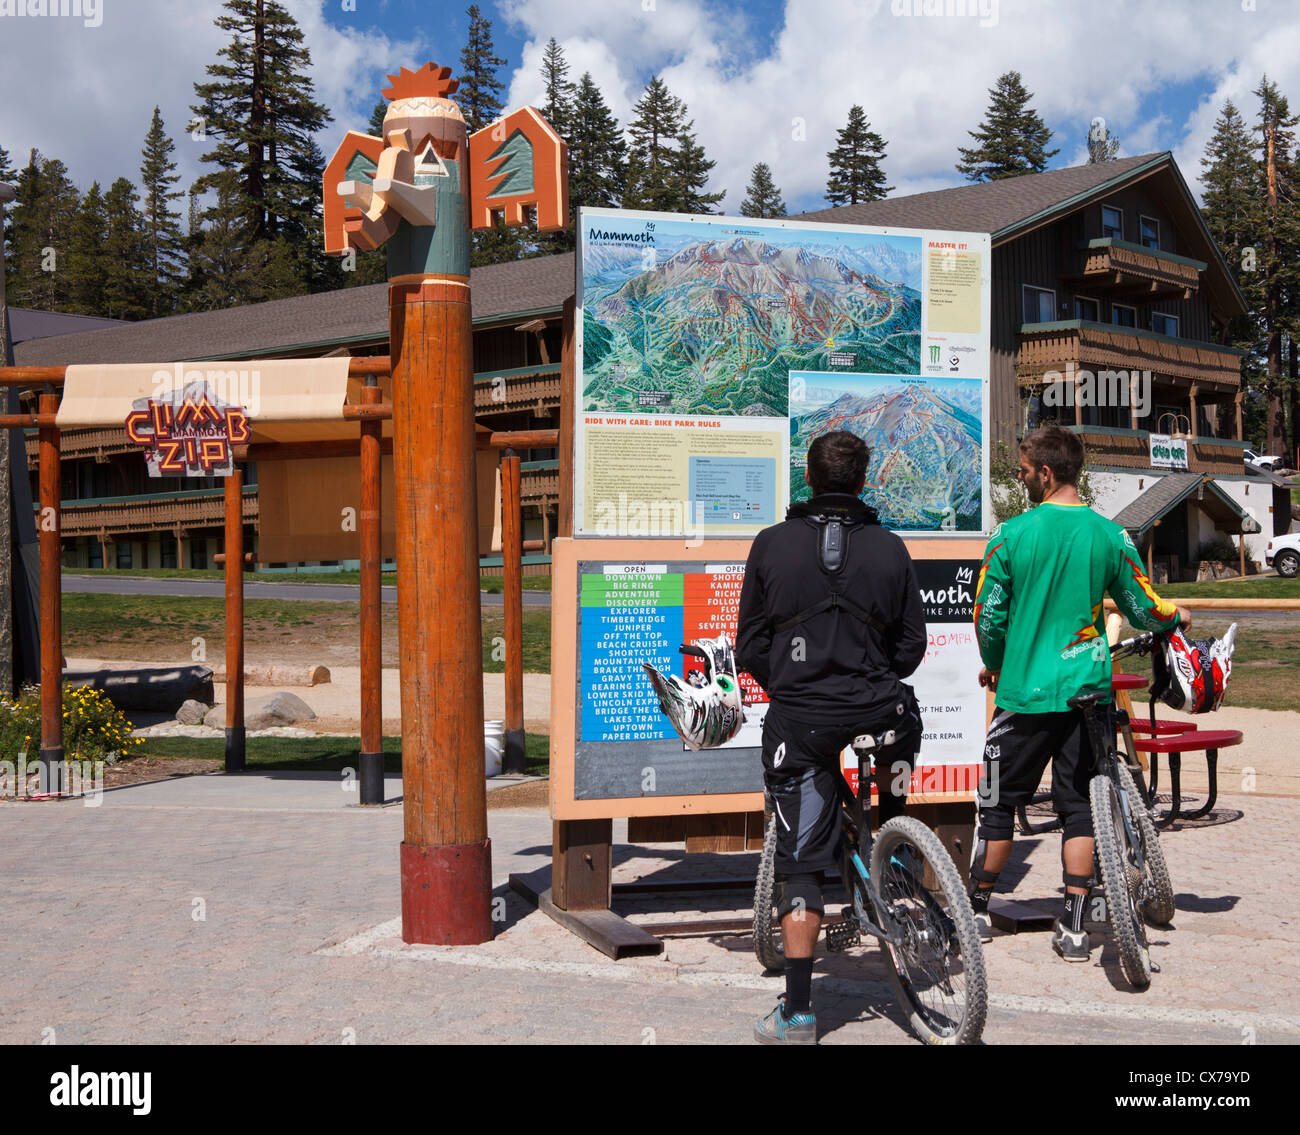 Mountain bikers look at trail map for Mammoth Mountain at ... on cave city attractions map, mammoth village, mammoth house, mammoth weather, mammoth lifts, cave city tn map, mammoth mountain, mammoth gondola, lebanon hills map, buck hill map, mammoth wind cave national park,